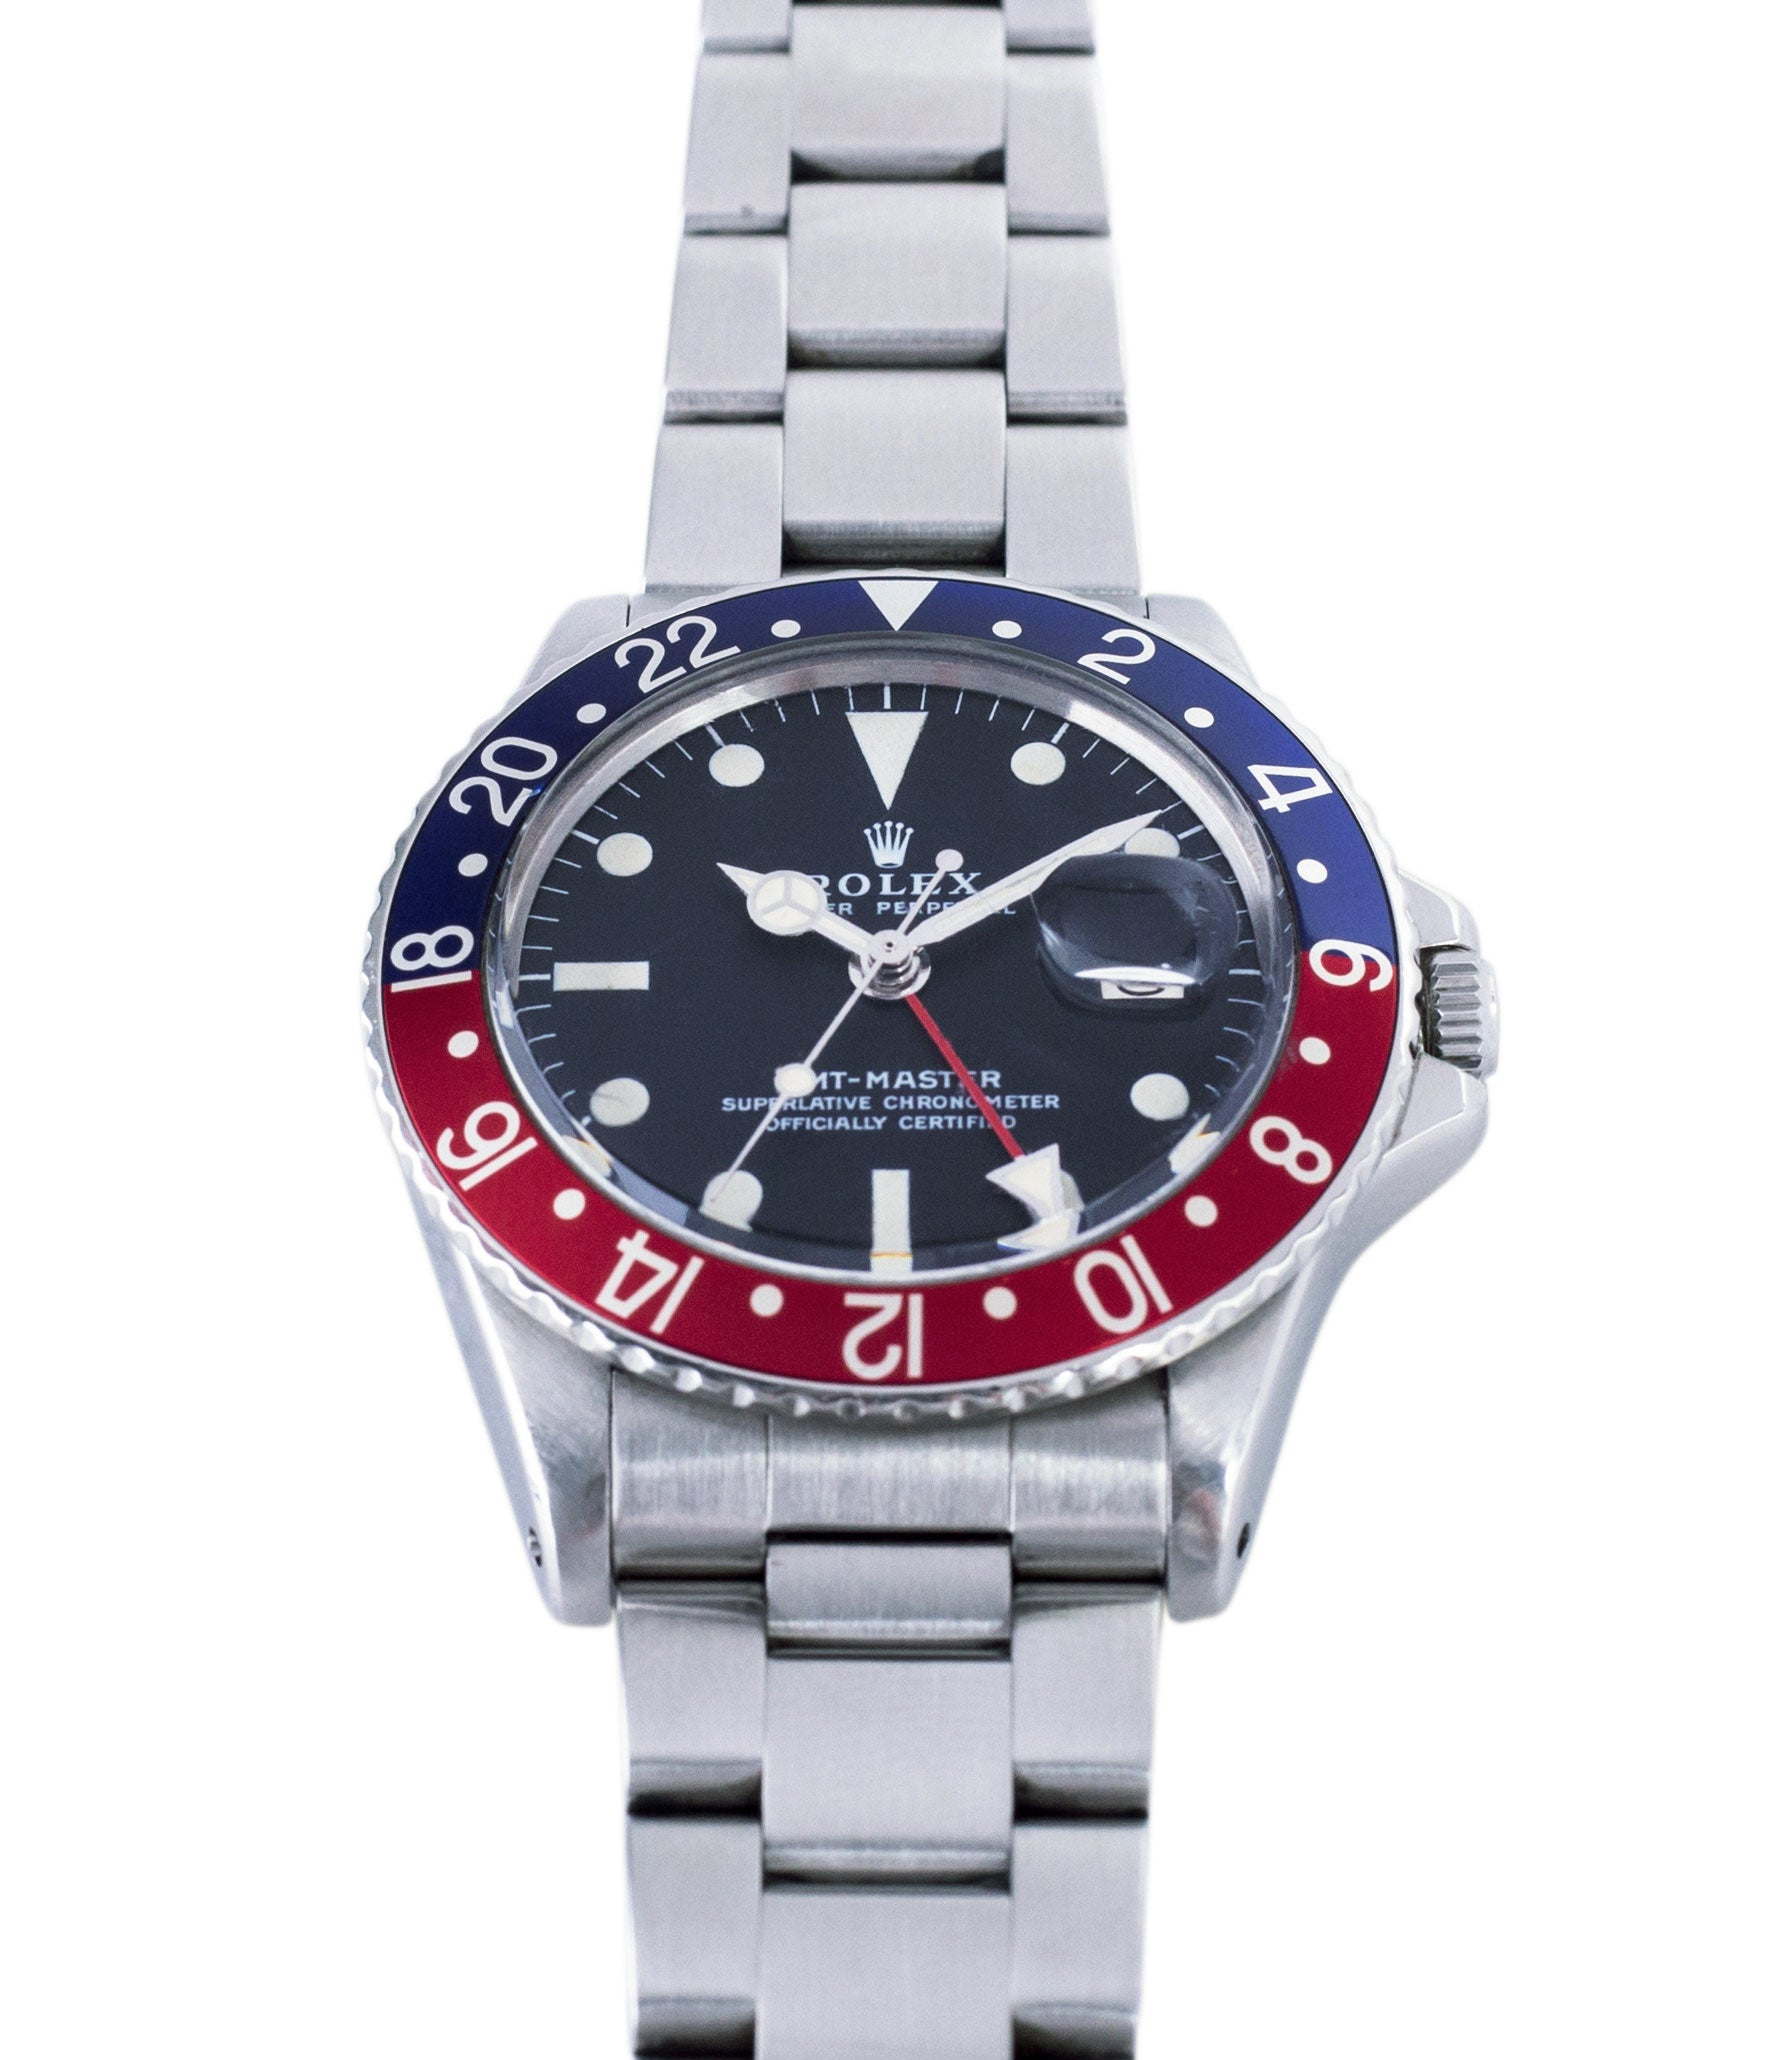 red blue Pepsi bezel vintage Rolex GMT Master 1675 vintage steel traveller sport watch Pepsi bezel for sale online at A Collected Man London vintage watch specialist